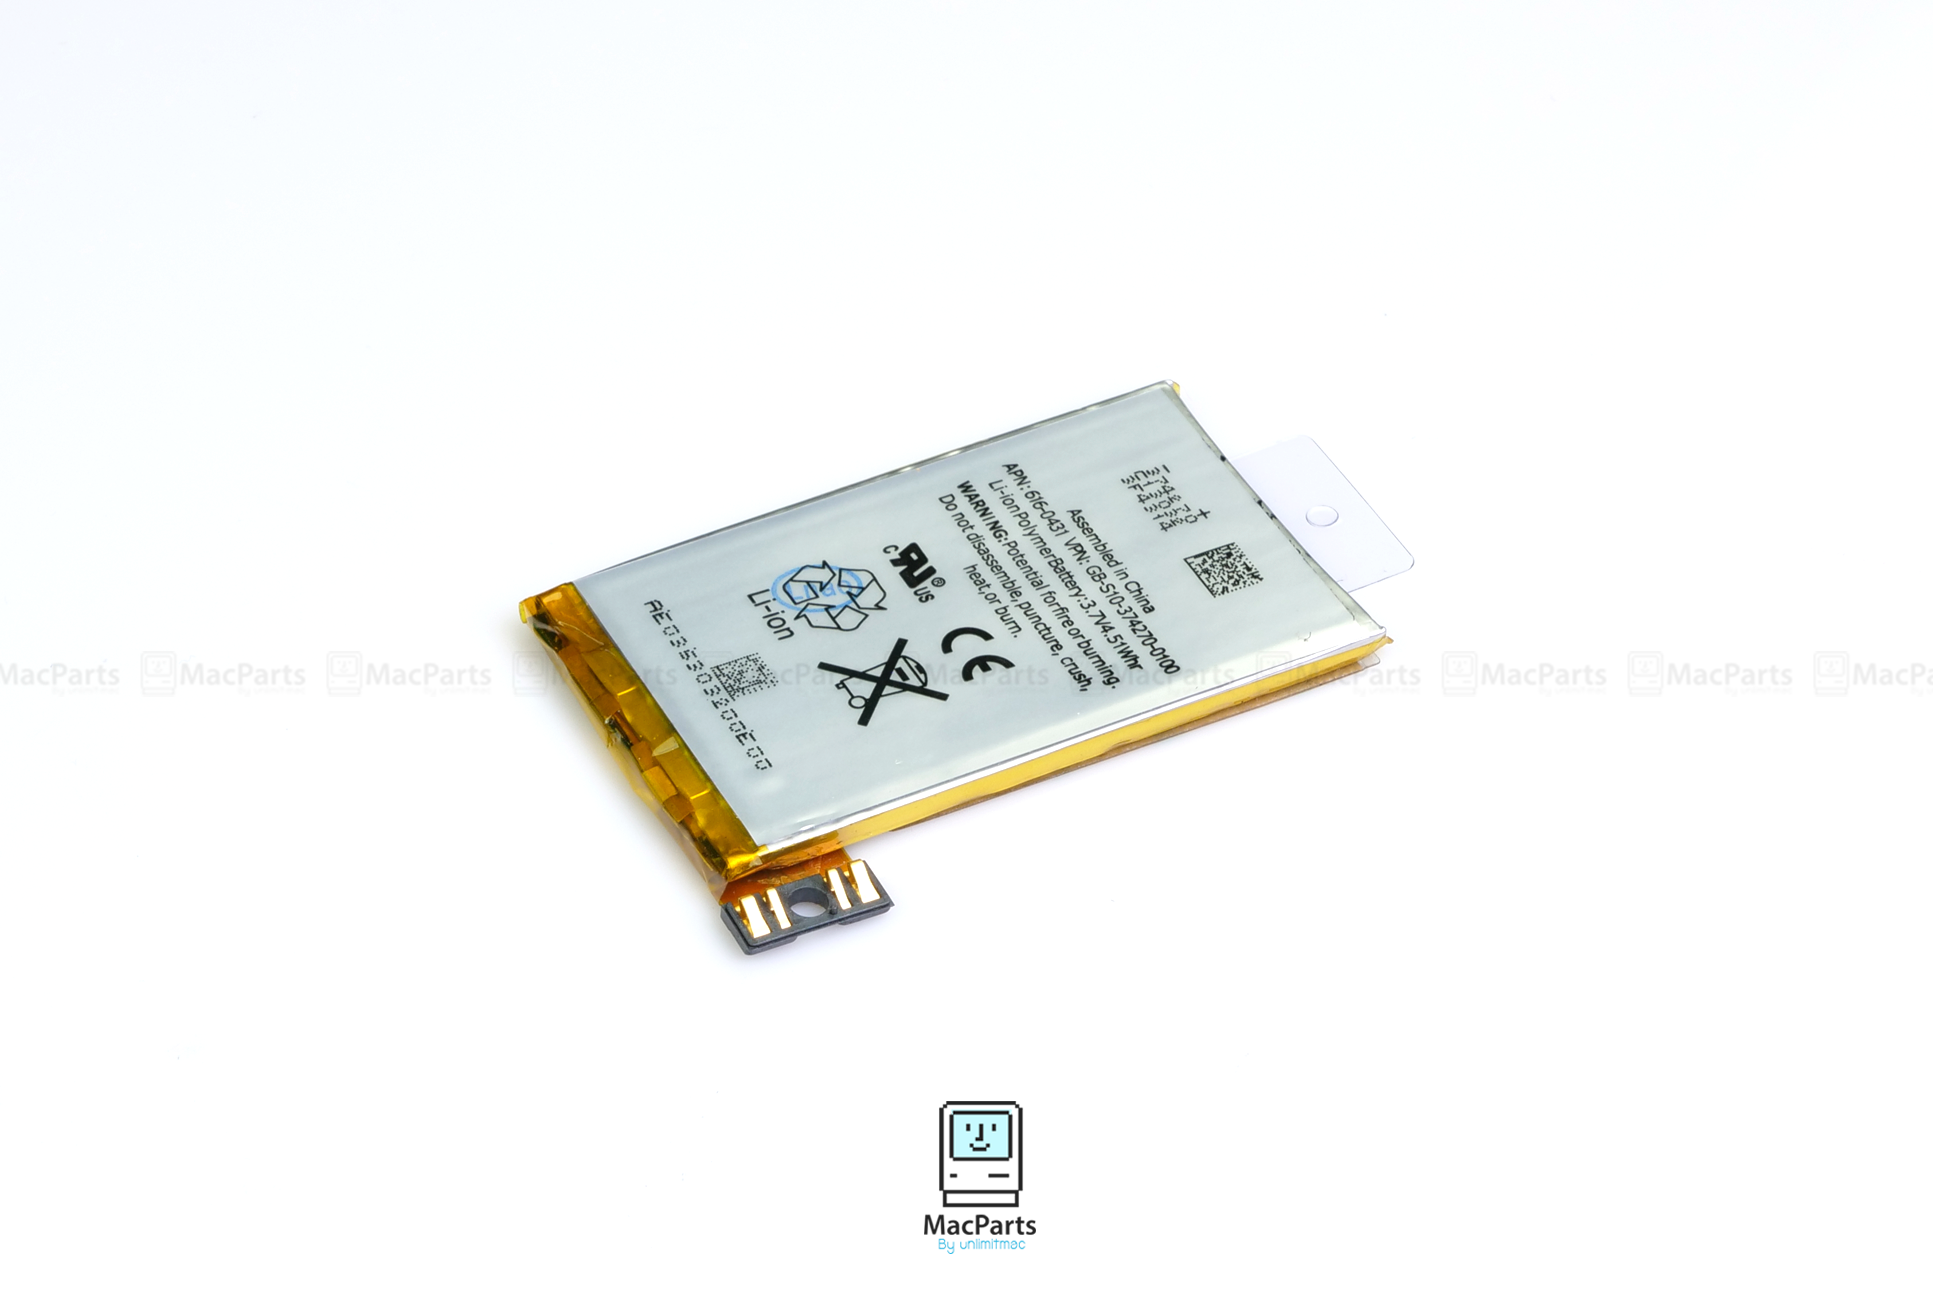 616-0433,661-0431,616-0432 Battery For iPhone 3GS,แบตเตอรี่ไอโฟน 3GS